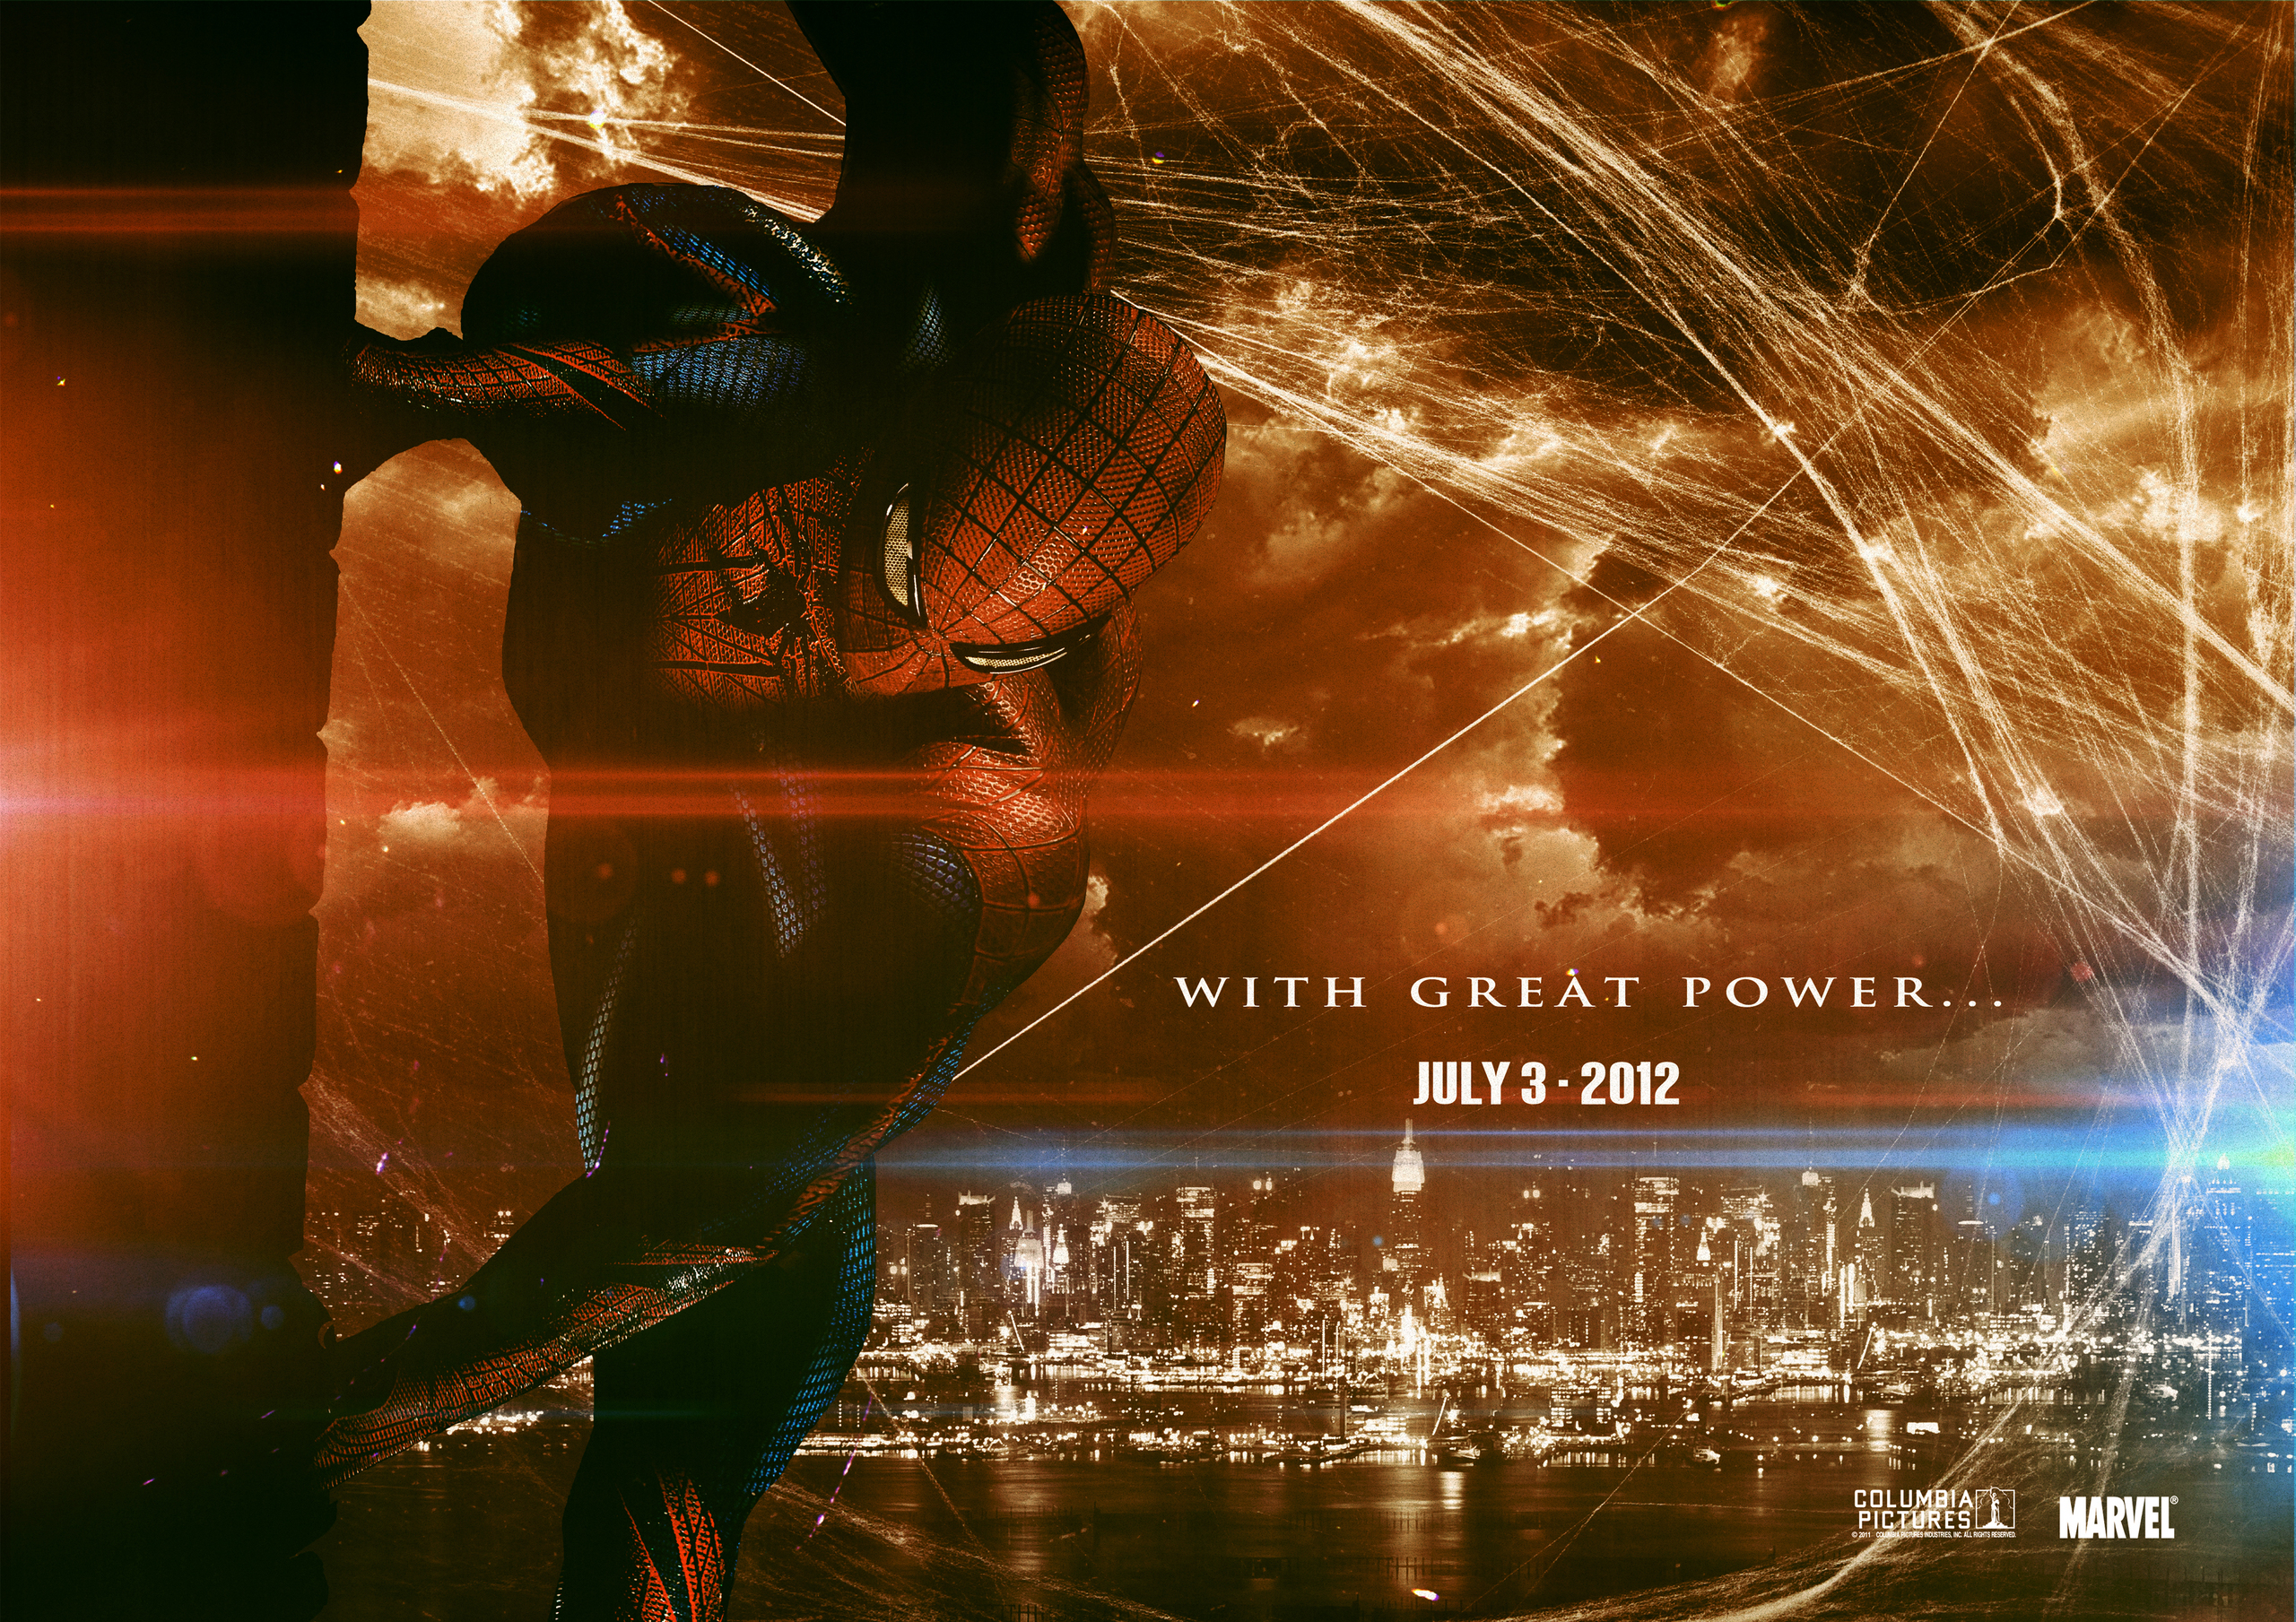 The Amazing Spider Man Teaser Trailer Shows A Familar